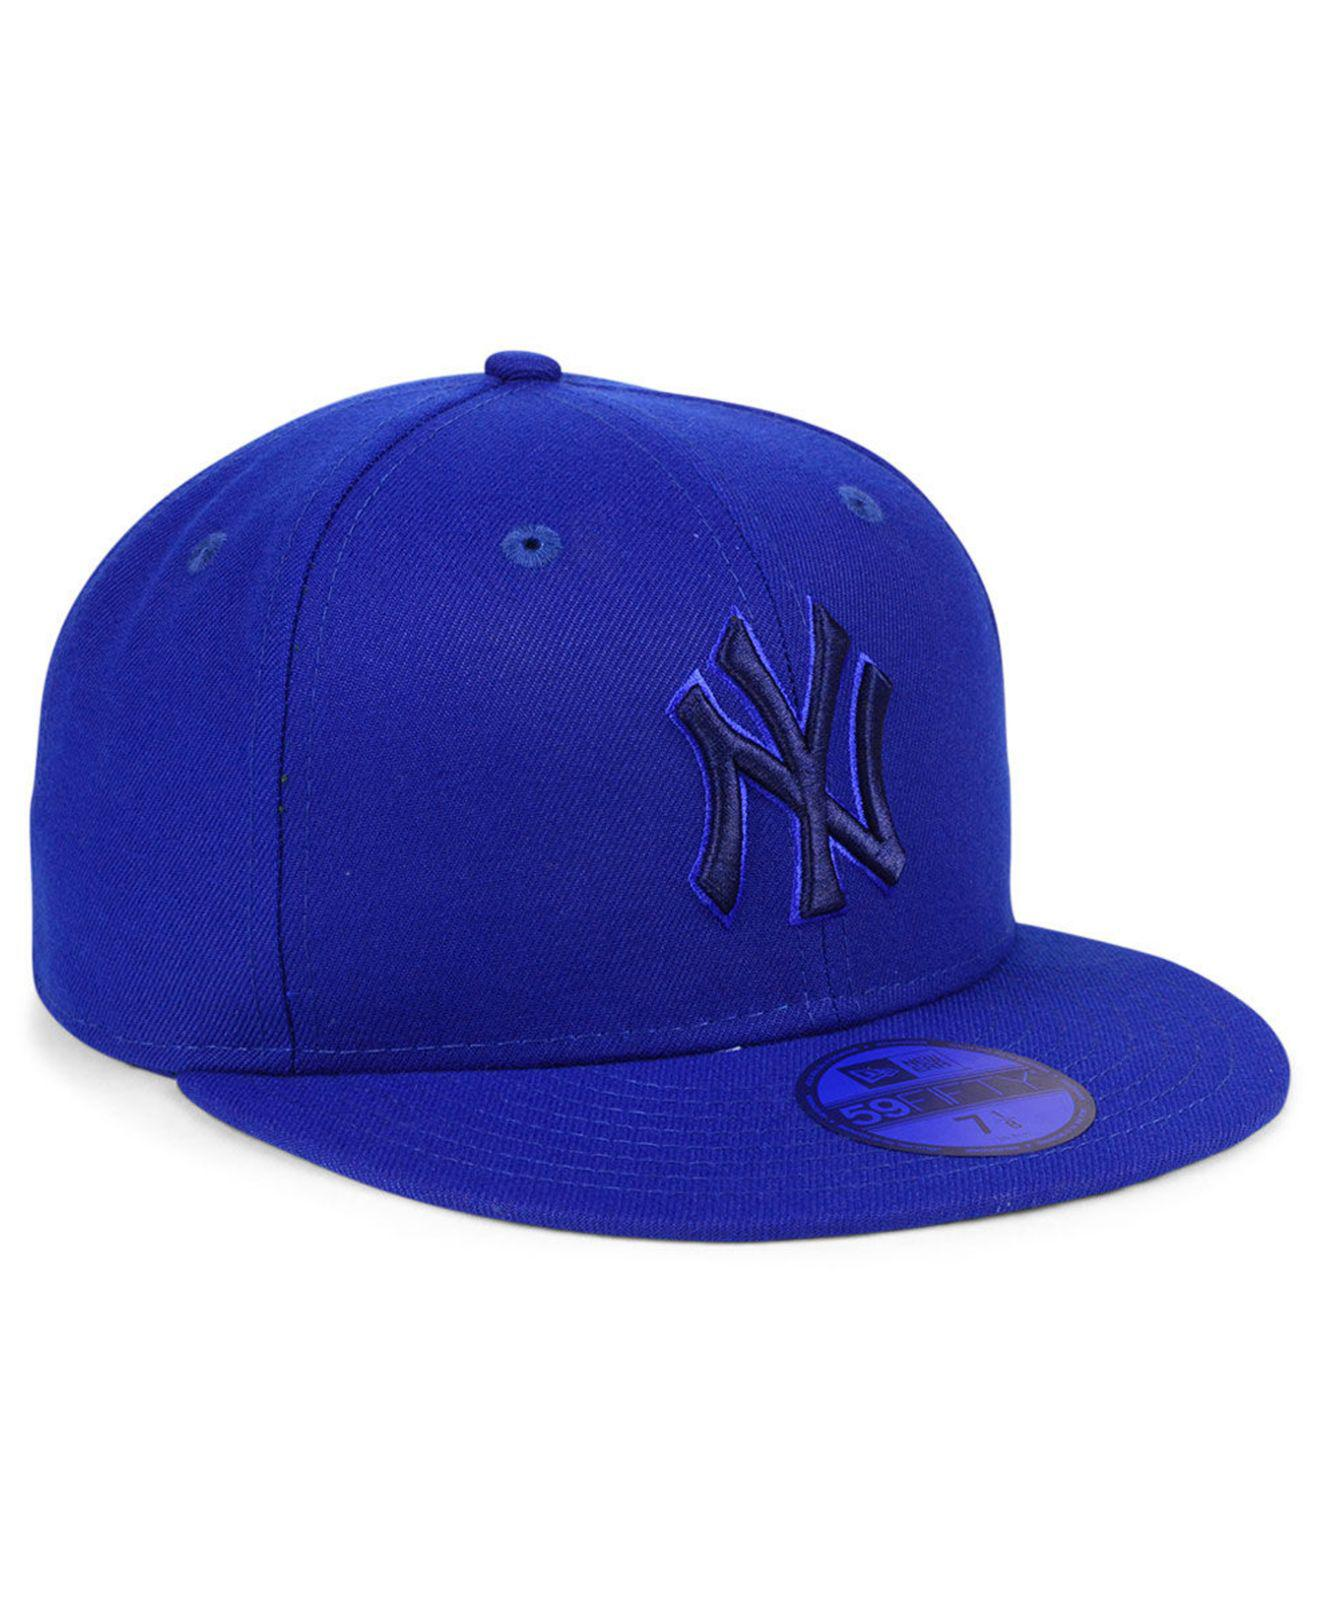 433477638c804 ... discount new york yankees prism color pack 59fifty fitted cap for men  lyst. view fullscreen